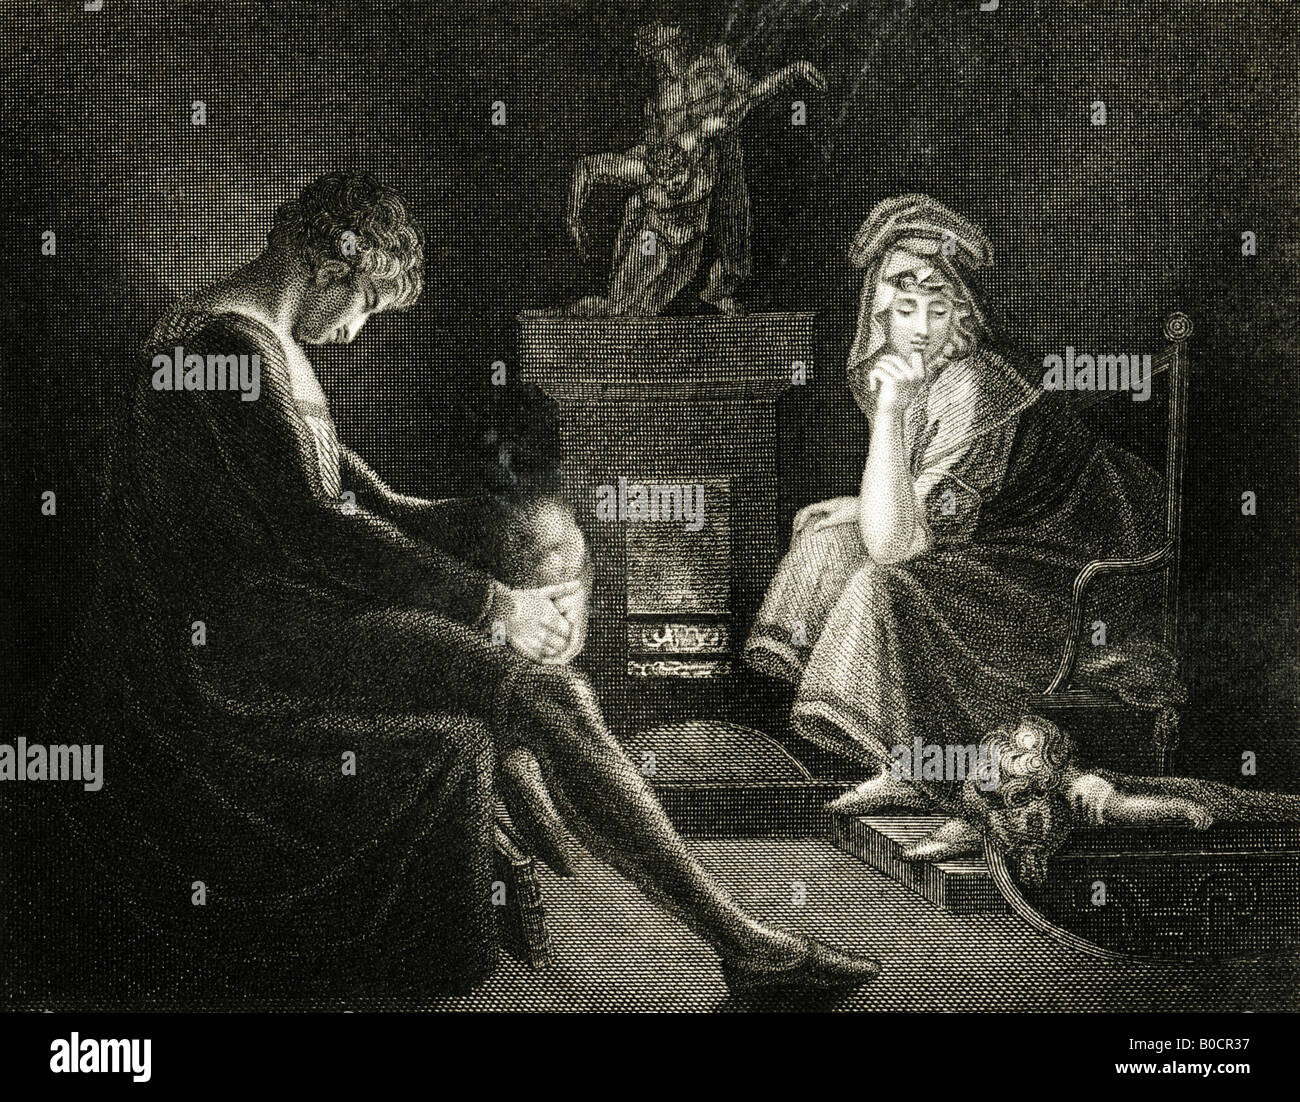 19th Century engraving Print of Silence 1835 from a painting by J A Fuseli RA from John Milton's Il Penseroso - Stock Image